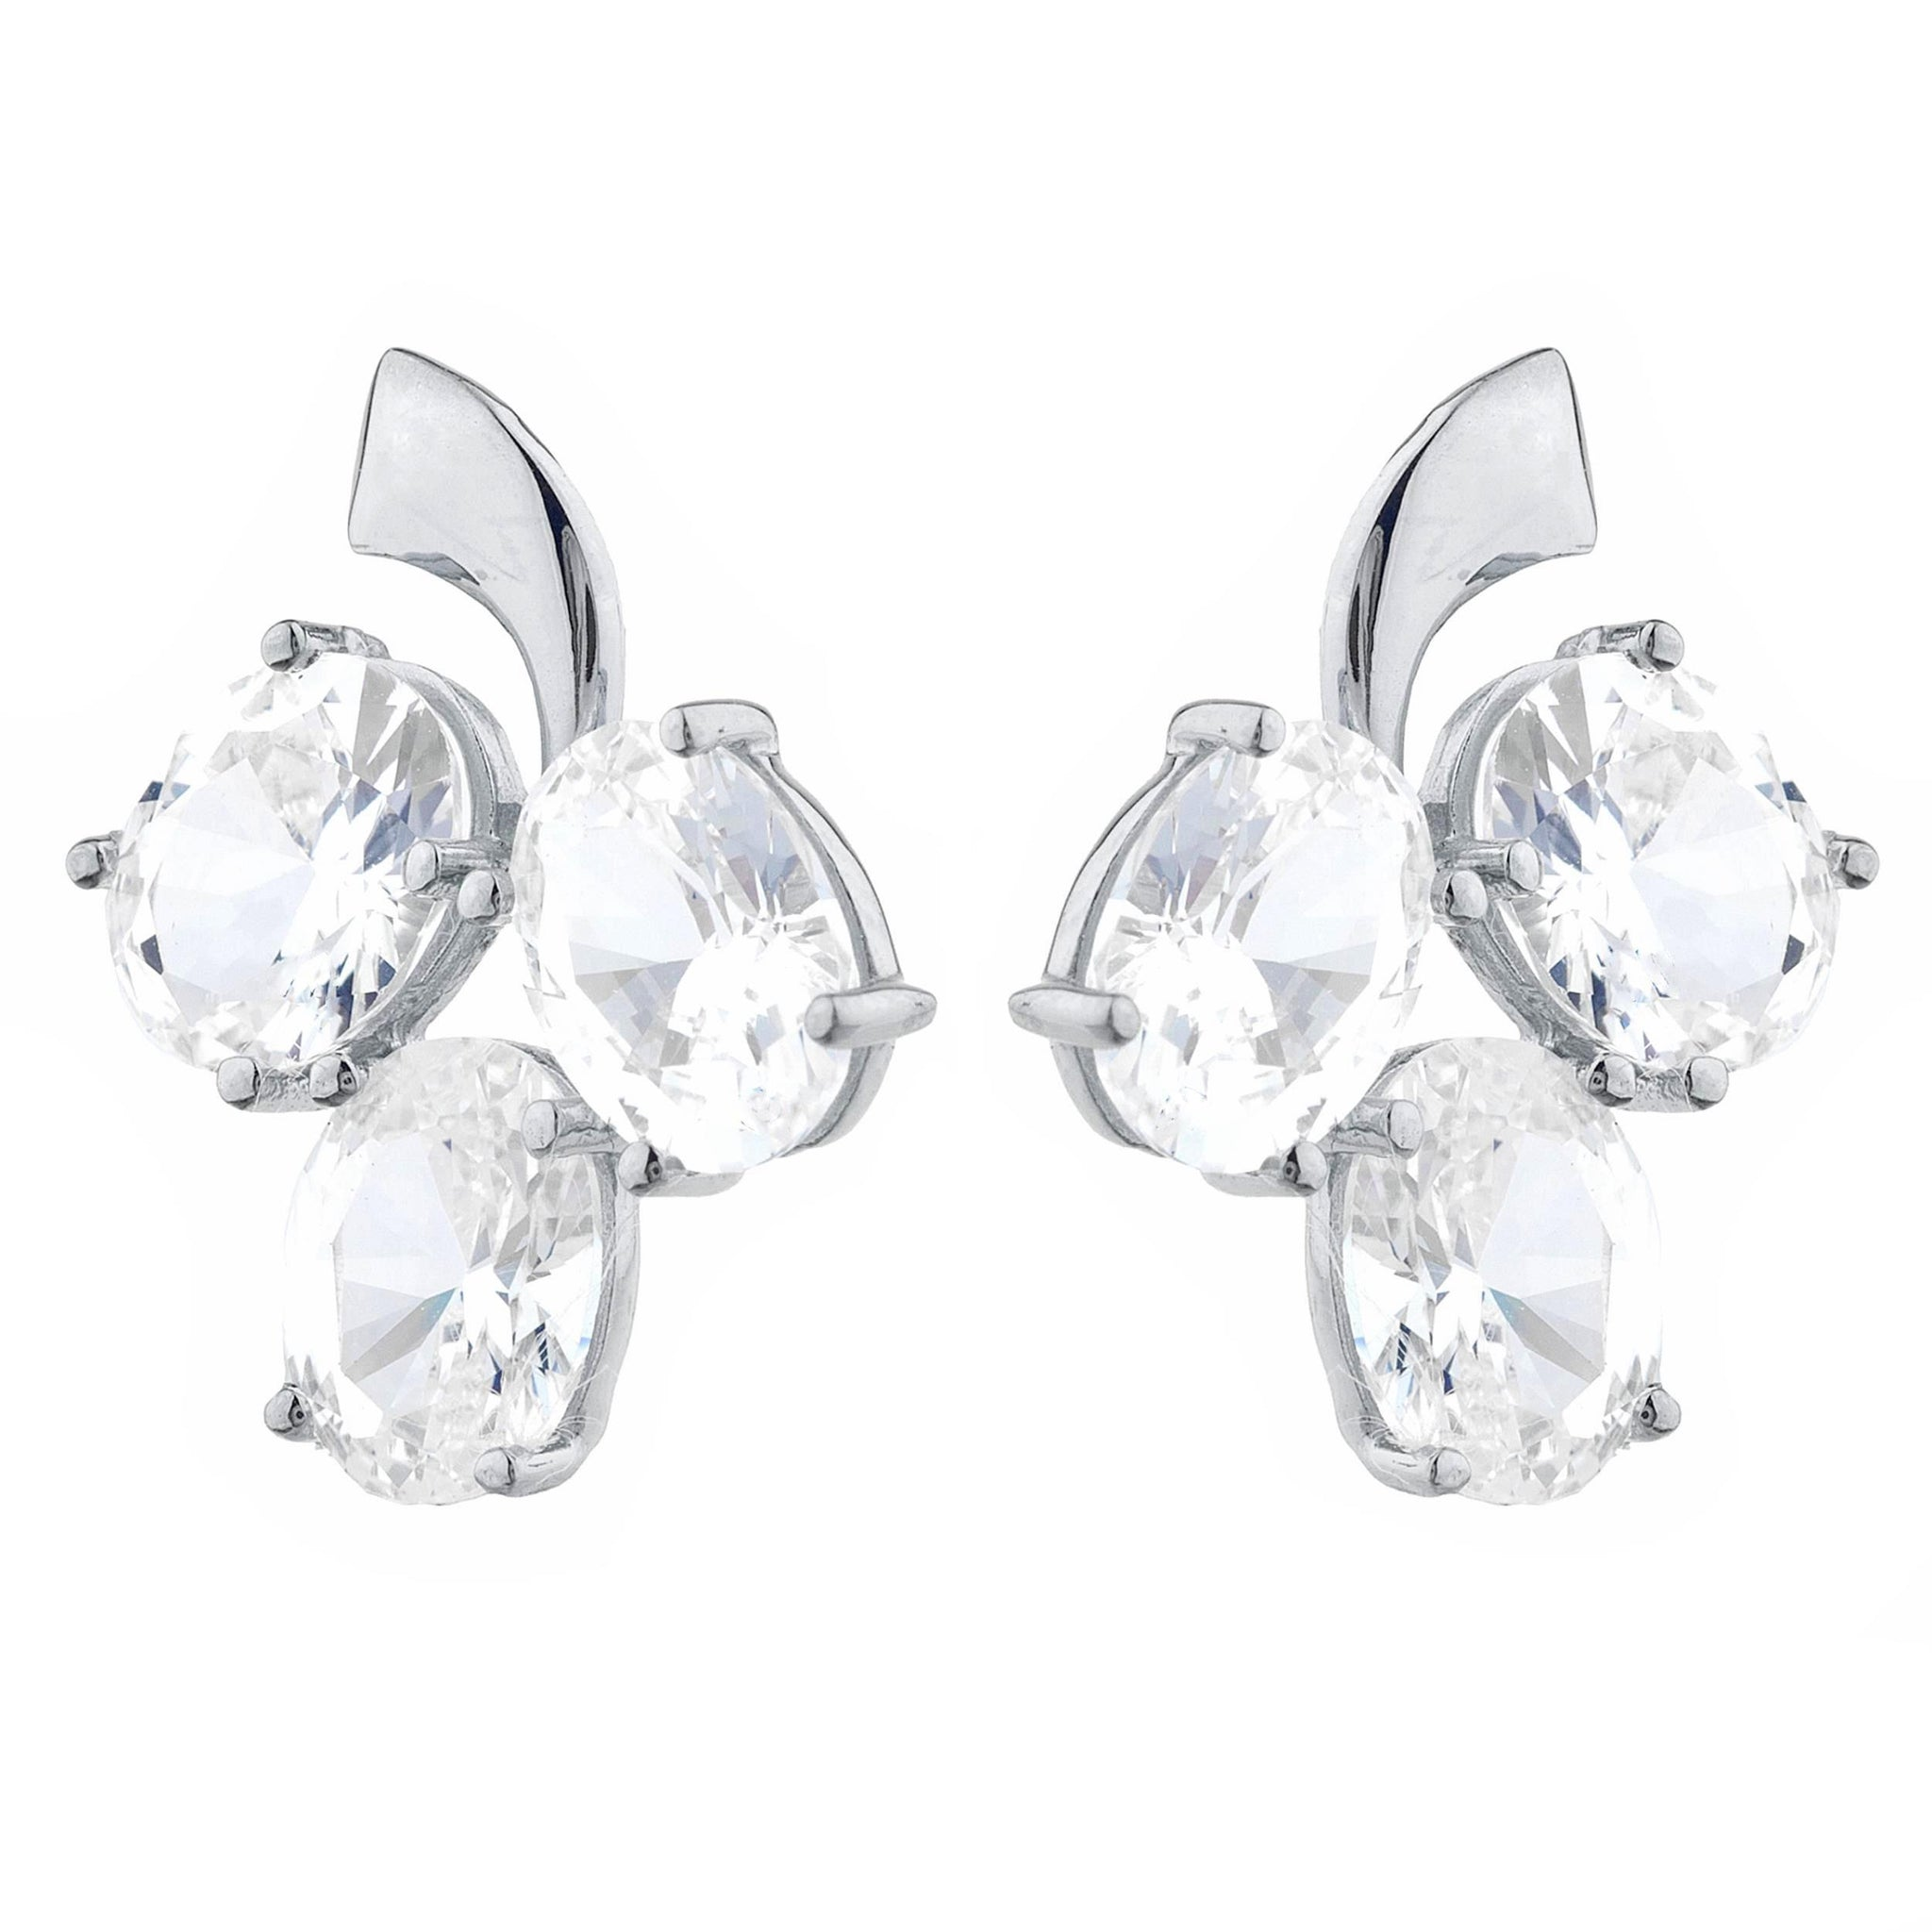 9 Ct Cubic Zirconia Oval Design Stud Earrings .925 Sterling Silver